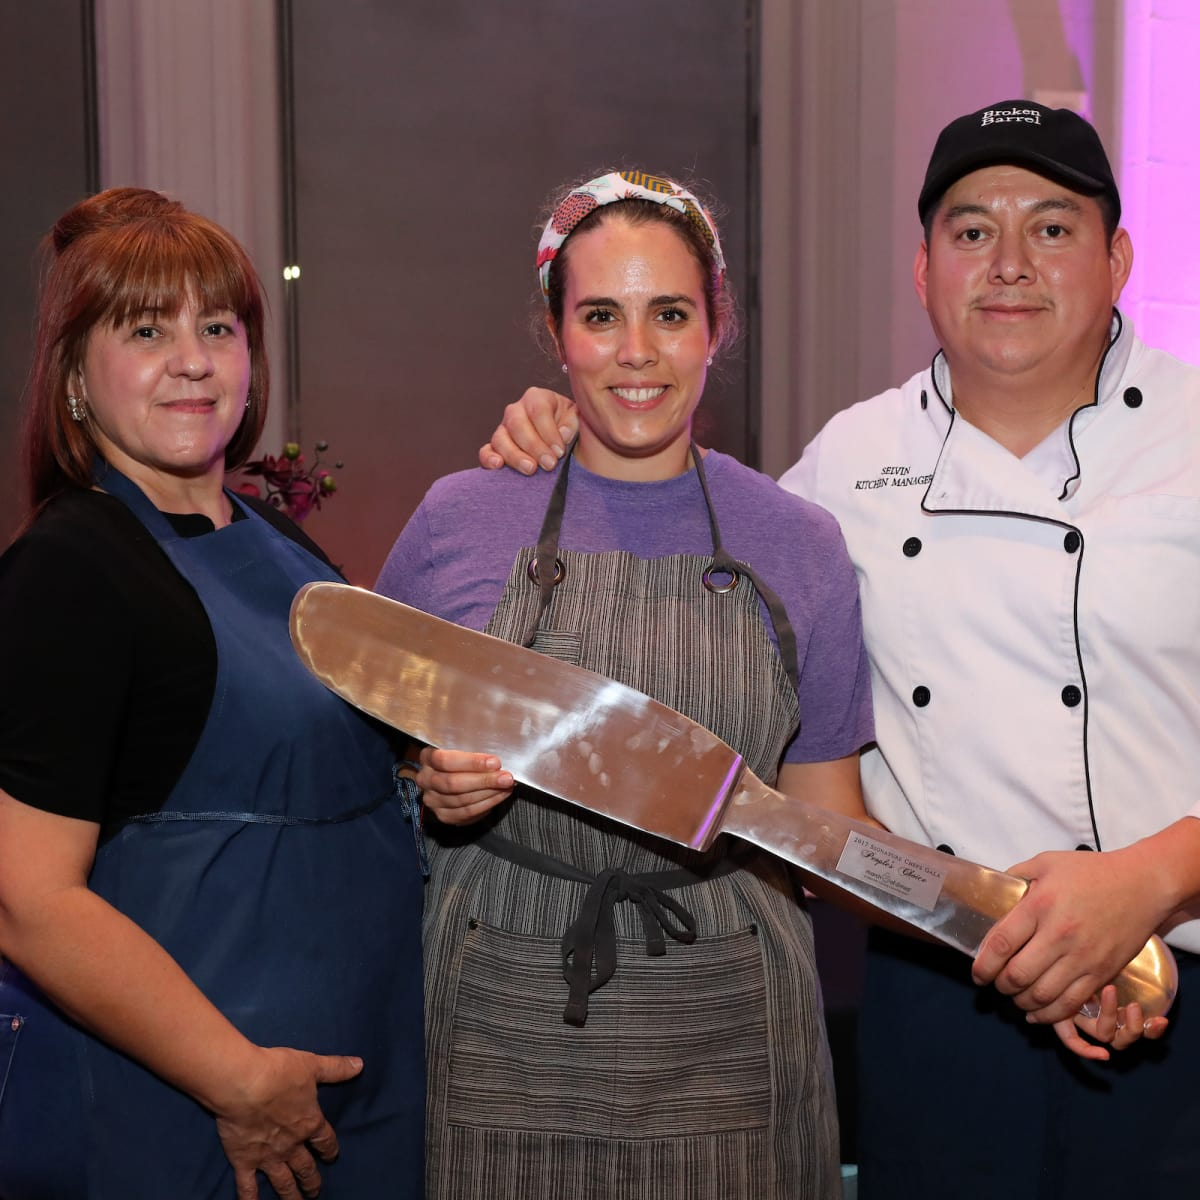 Houston, March of Dimes Signature Chefs, November 2017, Hilda Ysusi